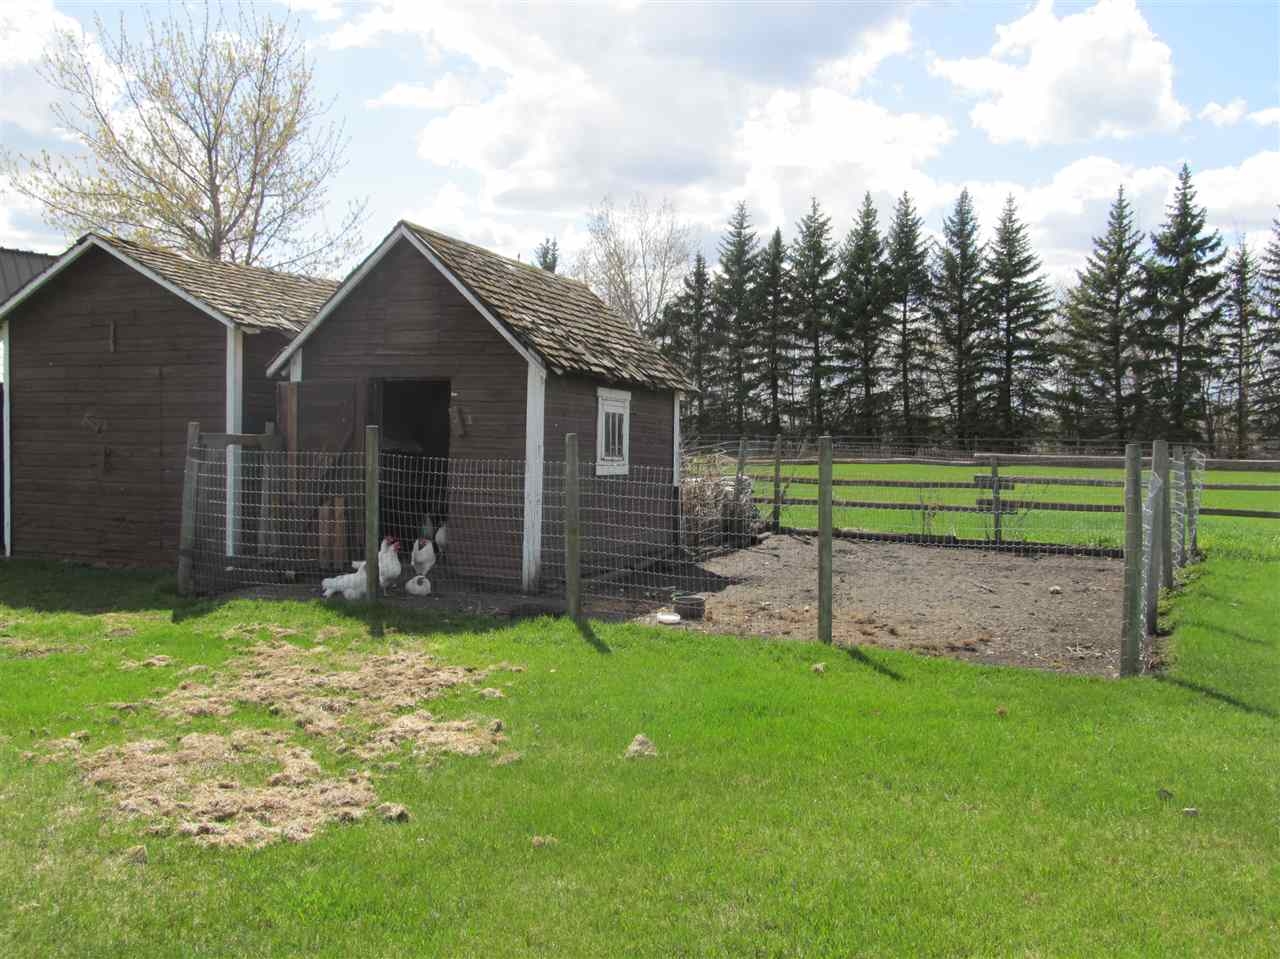 Photo 27: 25308 Twp Rd 570: Rural Sturgeon County House for sale : MLS(r) # E4063269